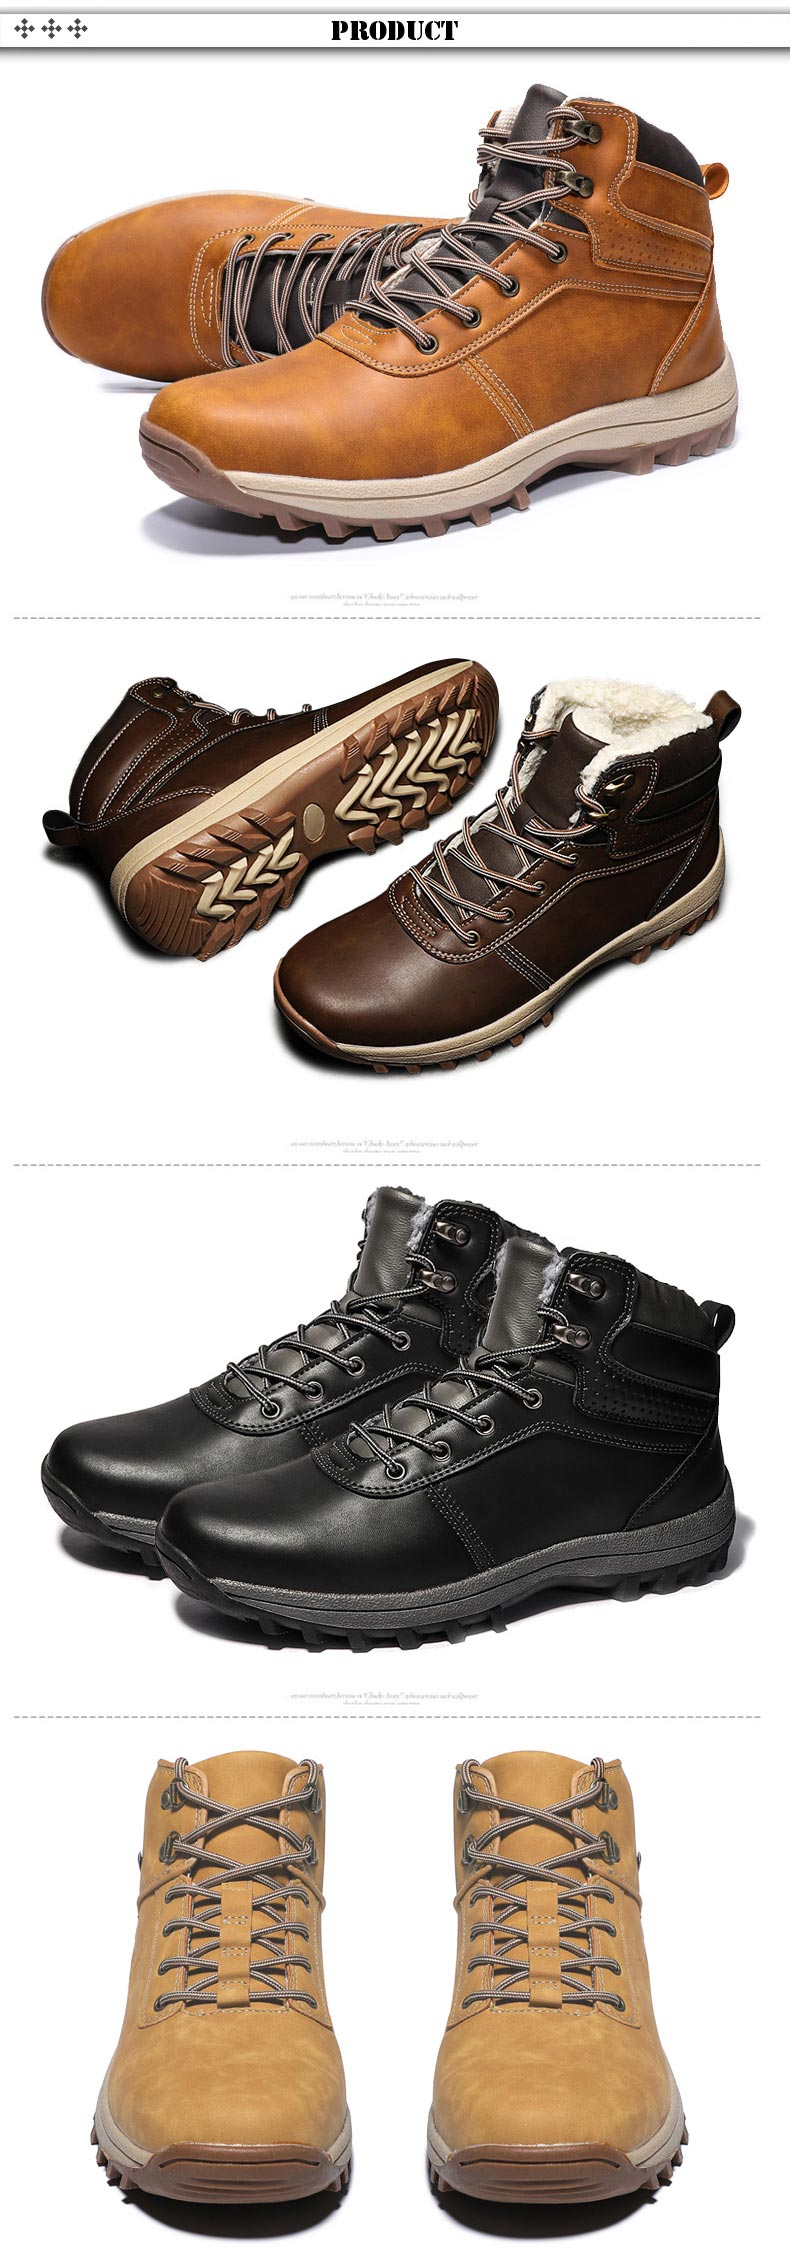 Boots Calethy Shoes